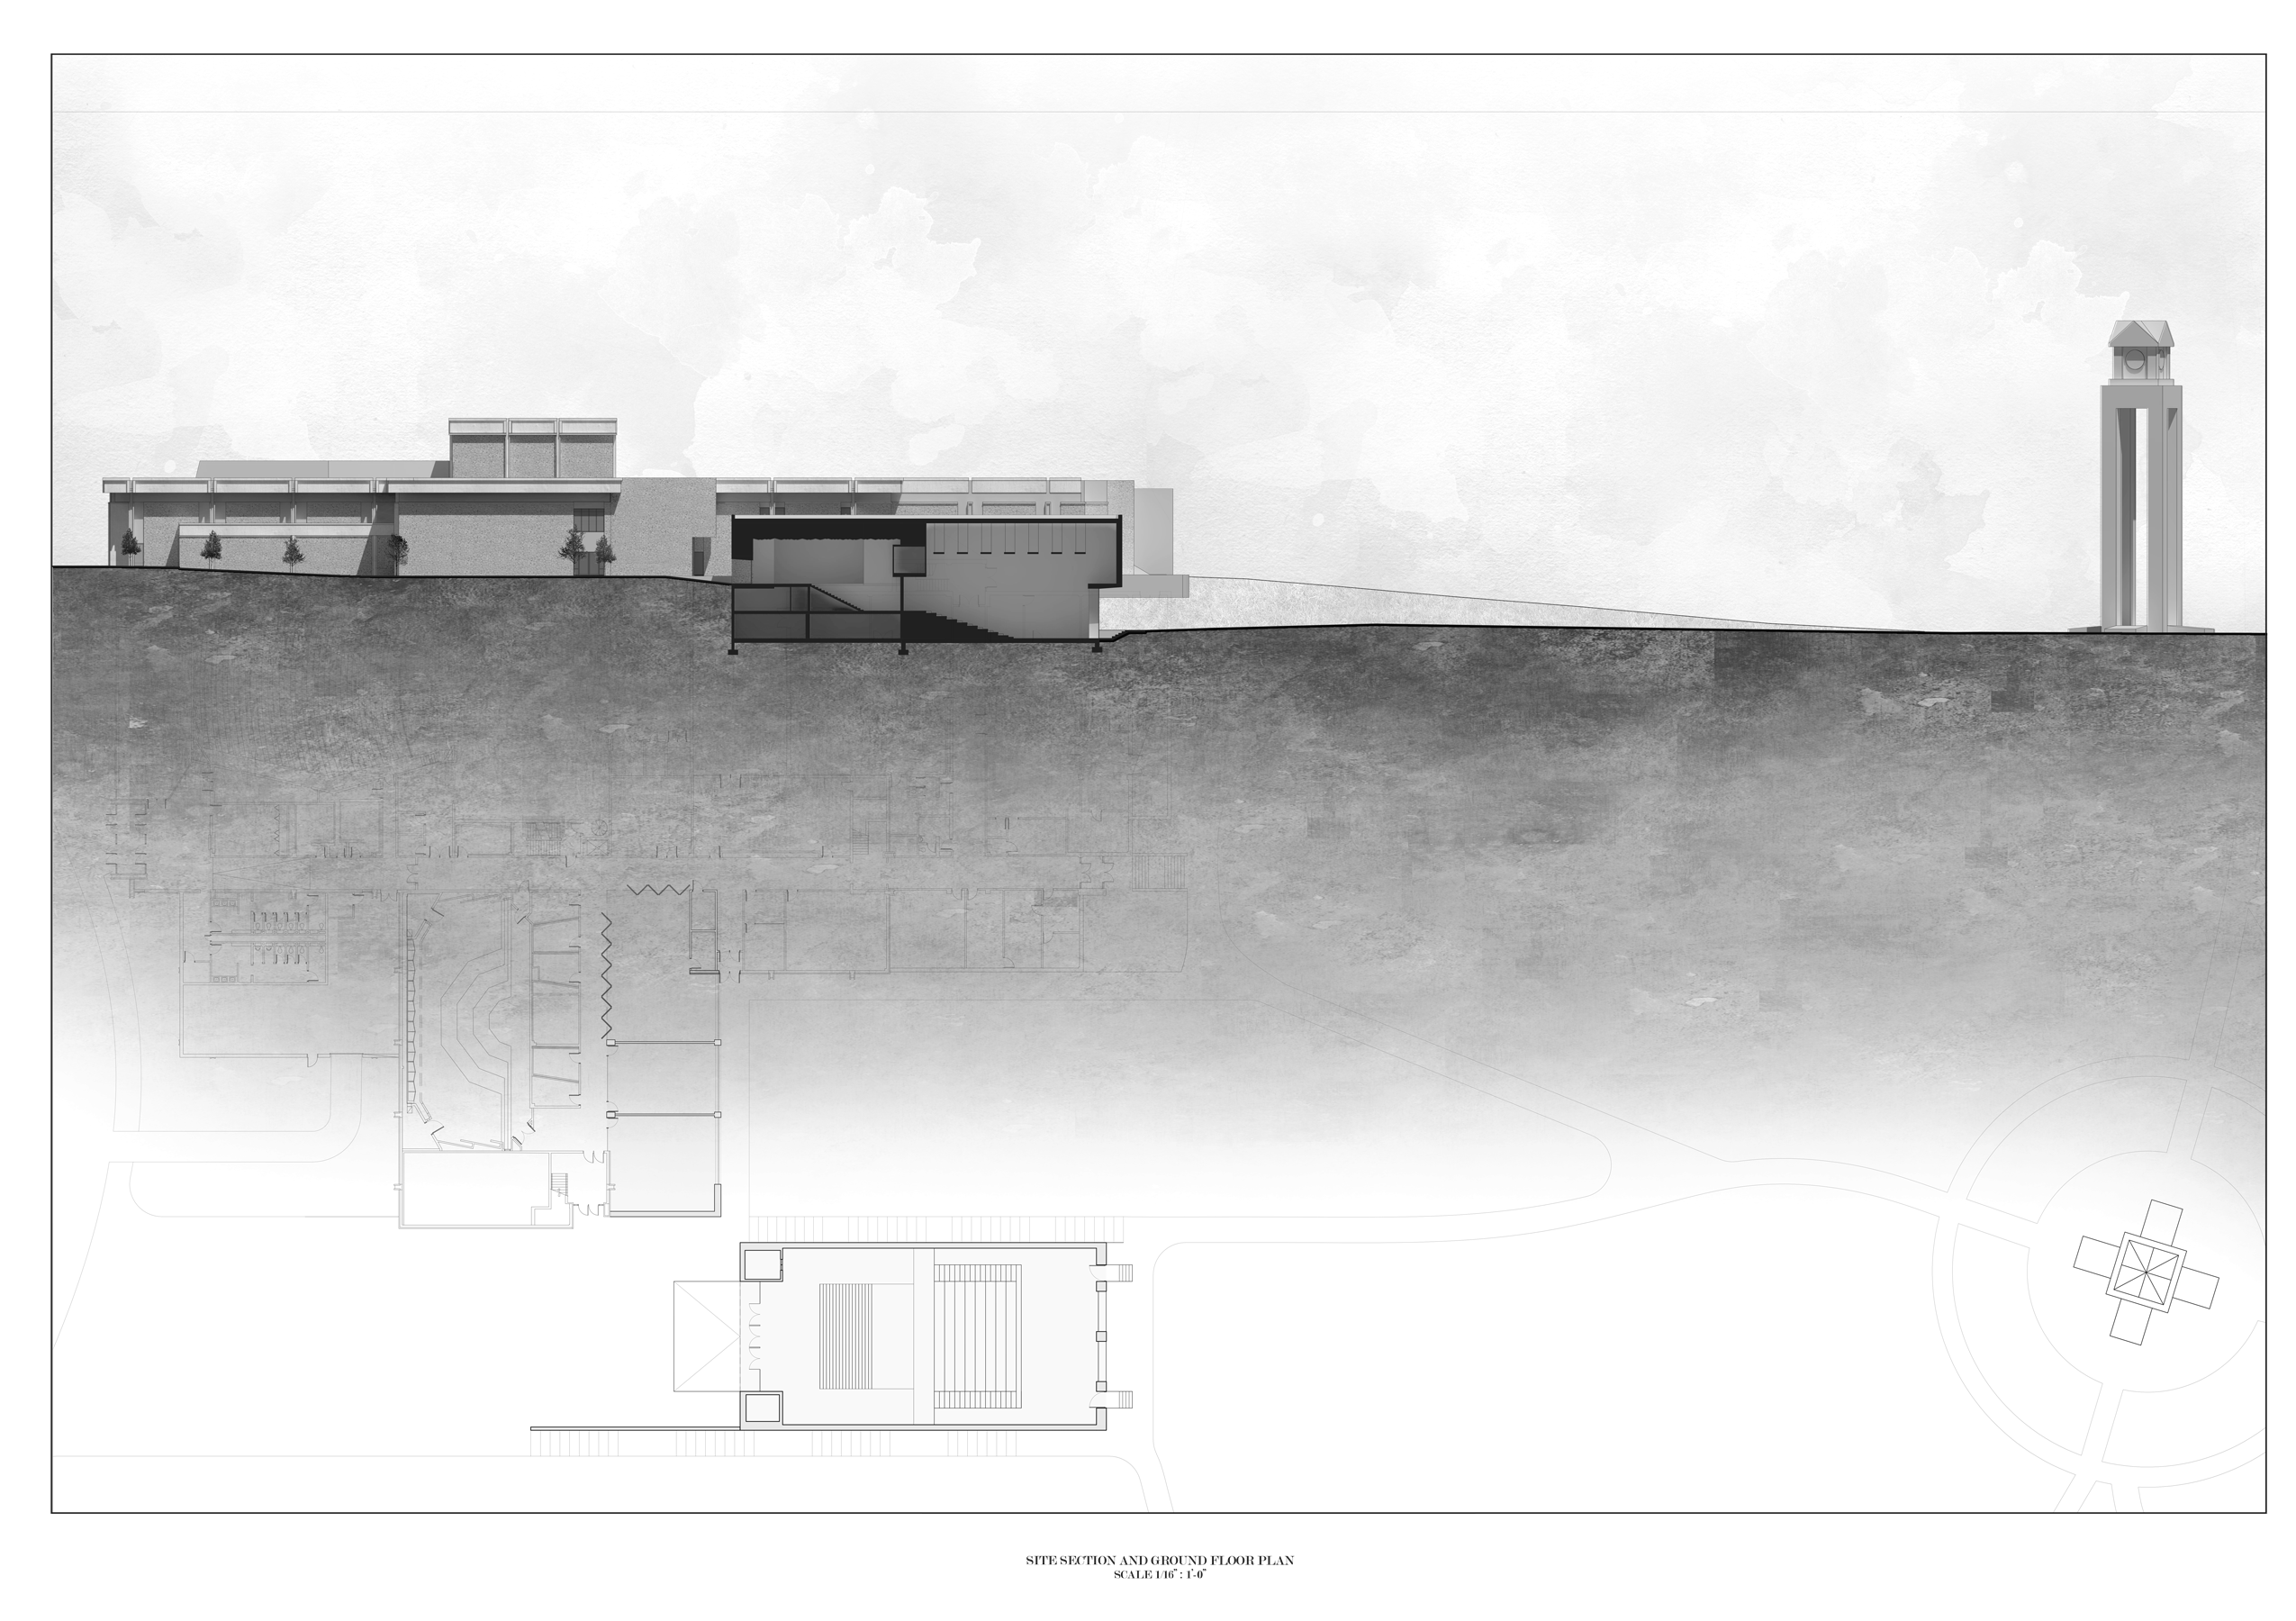 Site Section and Ground Floor Plan